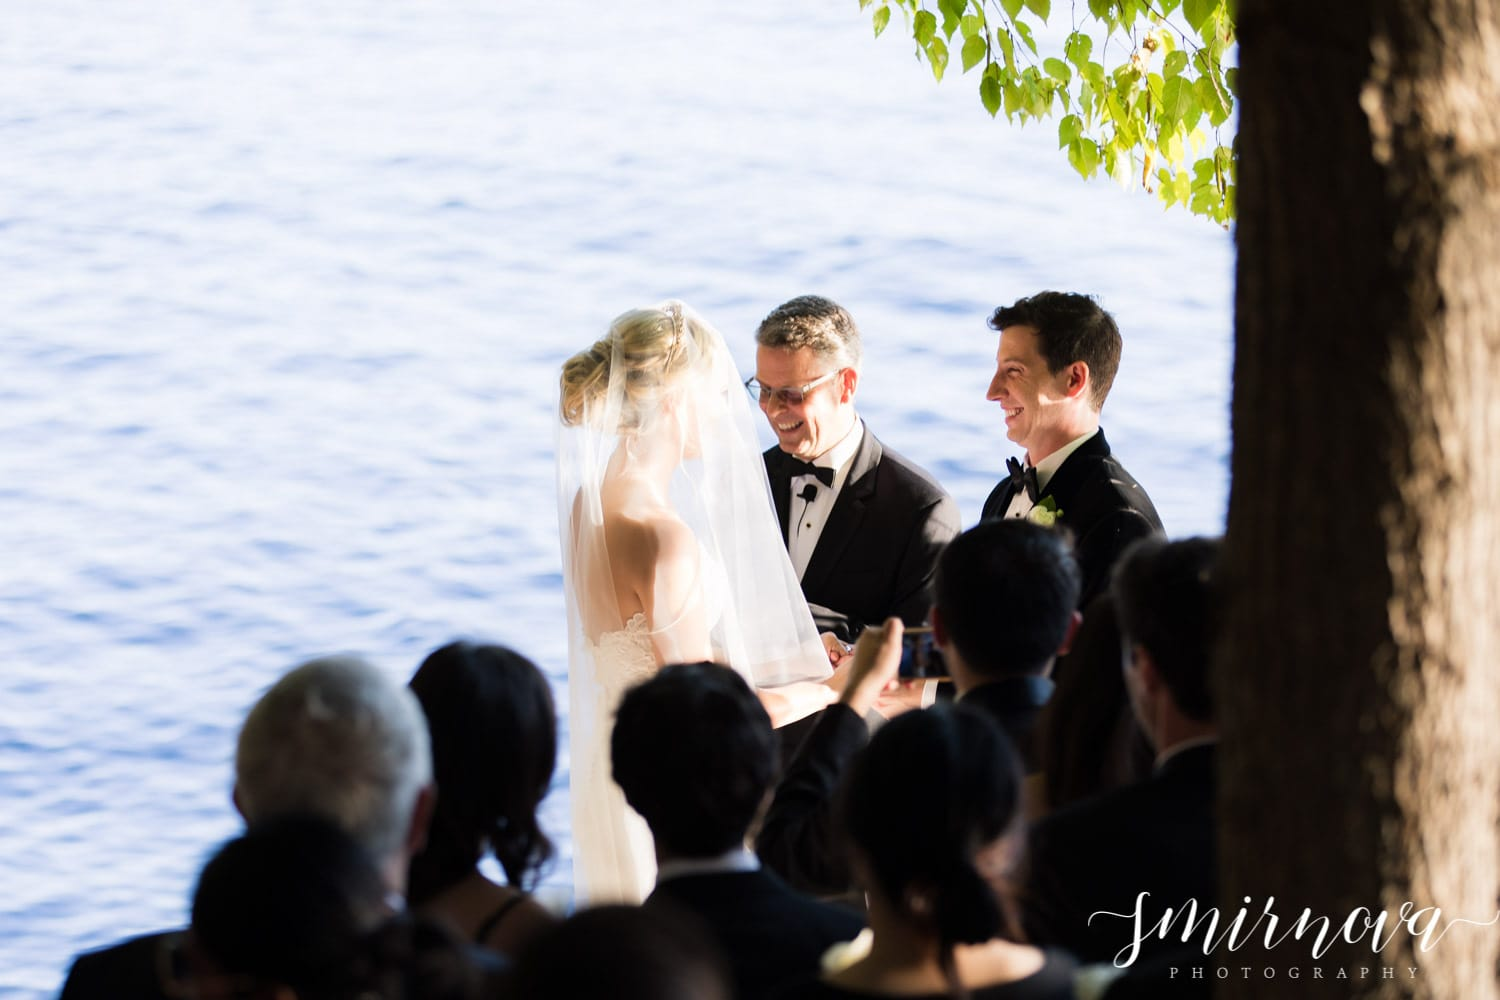 lakeside ceremony Smirnova Photography by Alyssa